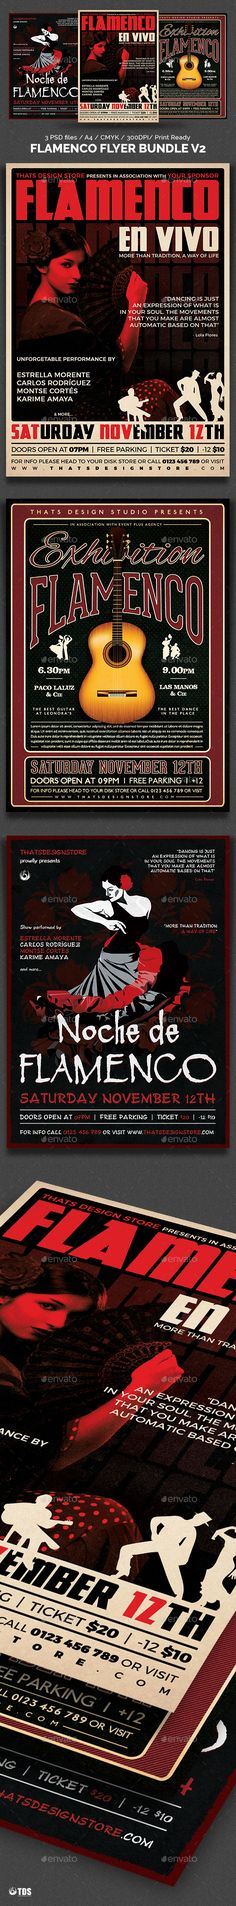 Flamenco Flyer Bundle V2 by lou606 3 Photoshop psd files, 1 help file. A4 size (21×29.7 cm) or (8.3×11.7 inch) with bleed (21.6×30.3 cm) or (8.5×11.9 inch). Print Re